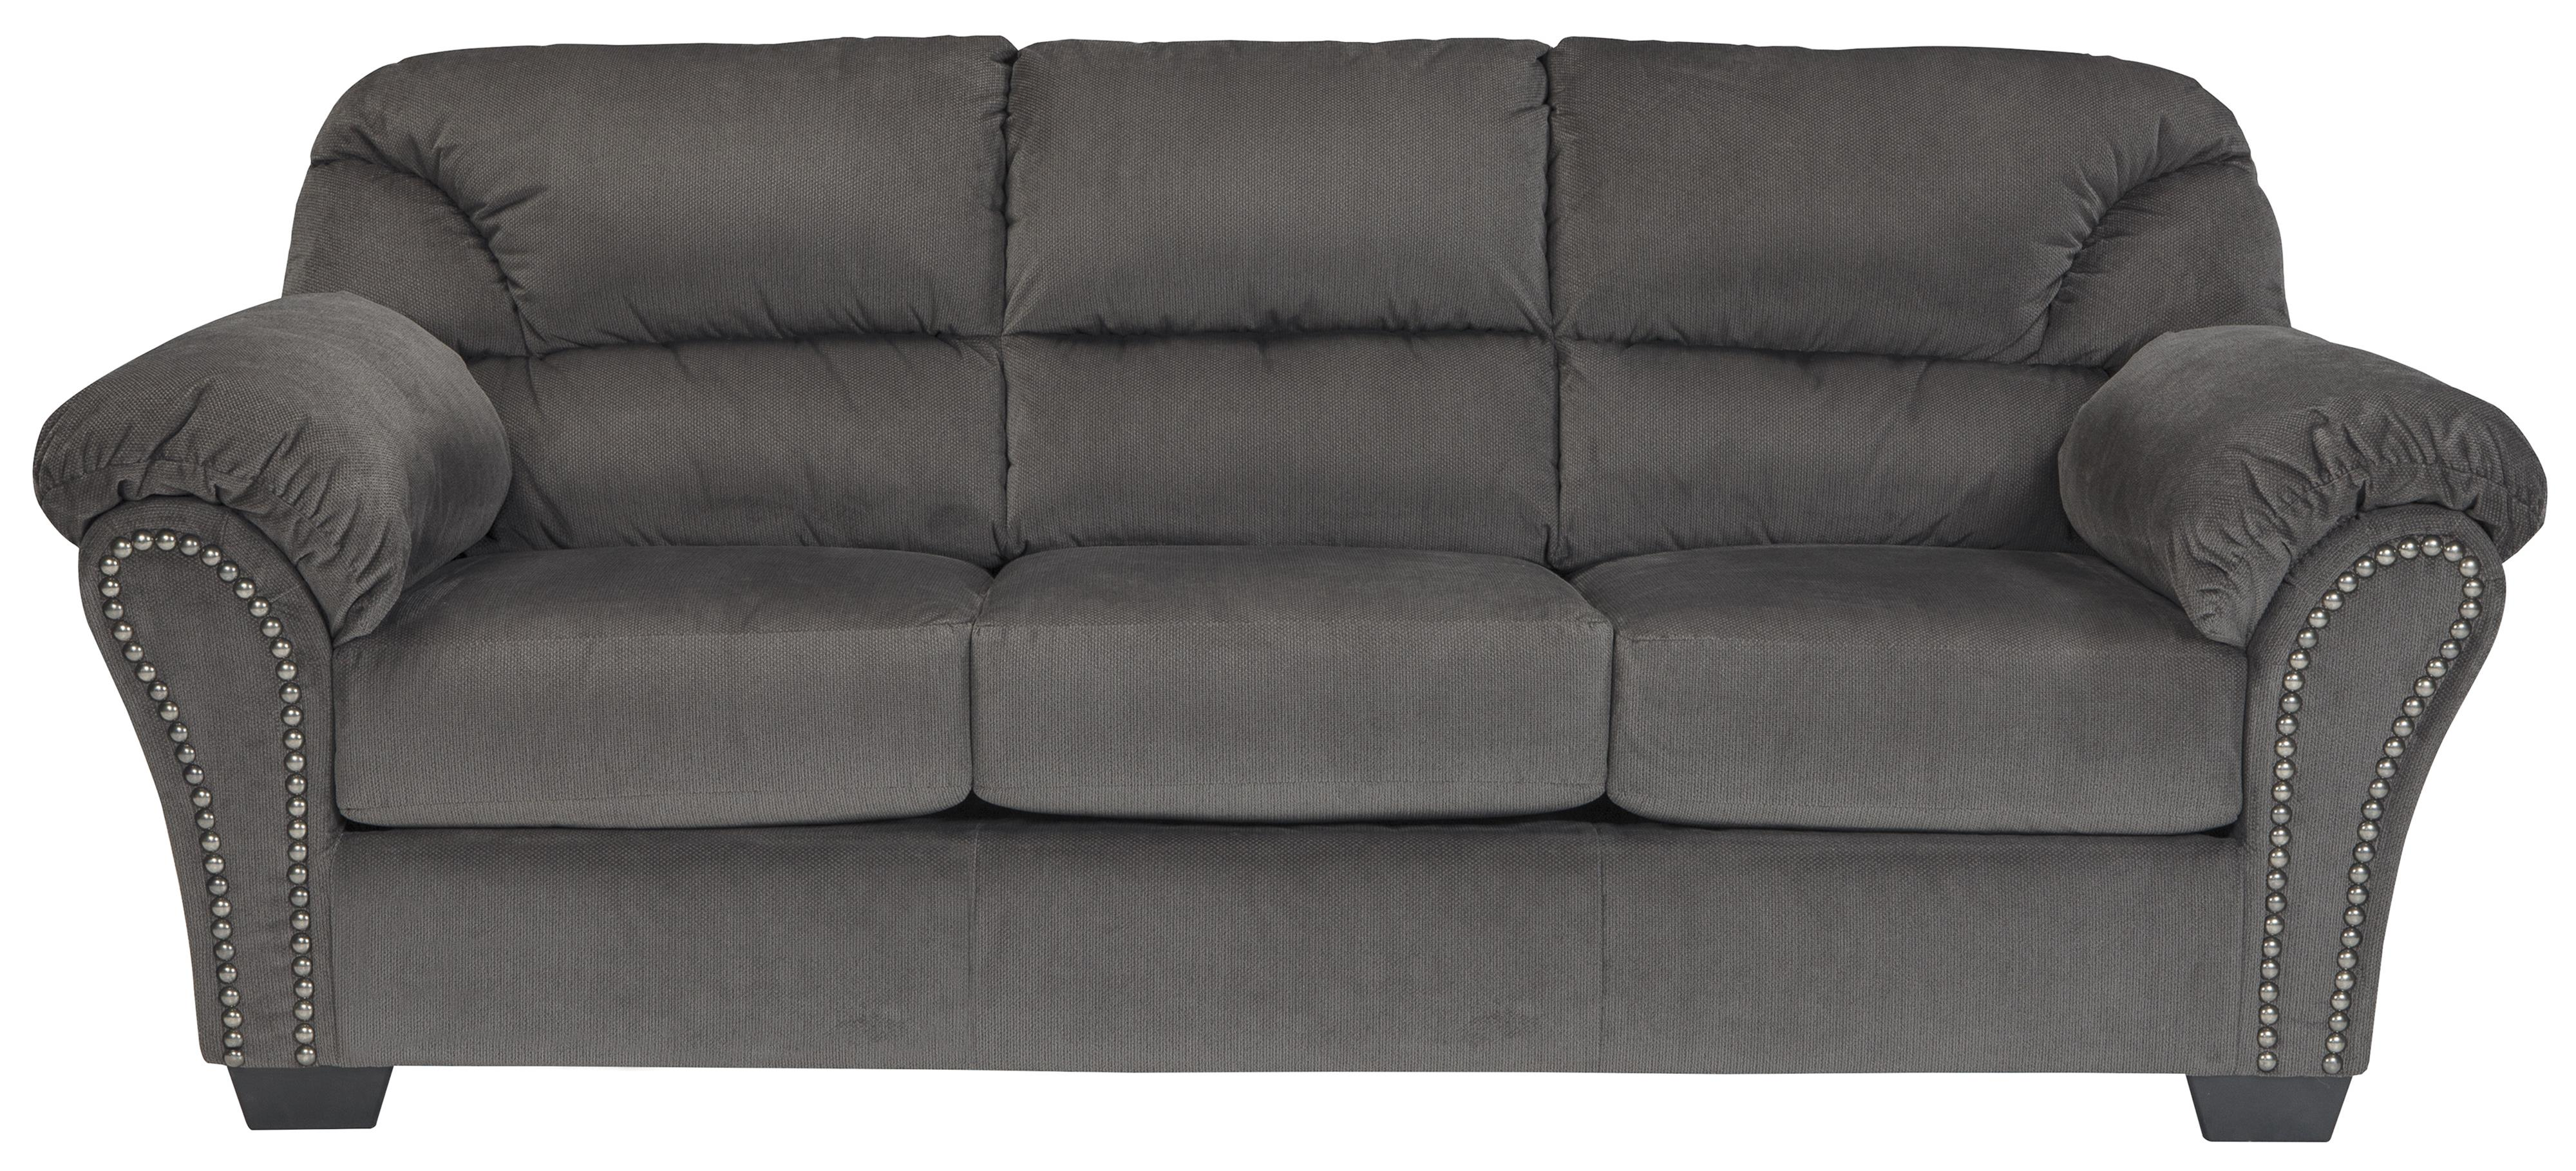 Signature Design by Ashley Kinlock Sofa - Item Number: 3340038